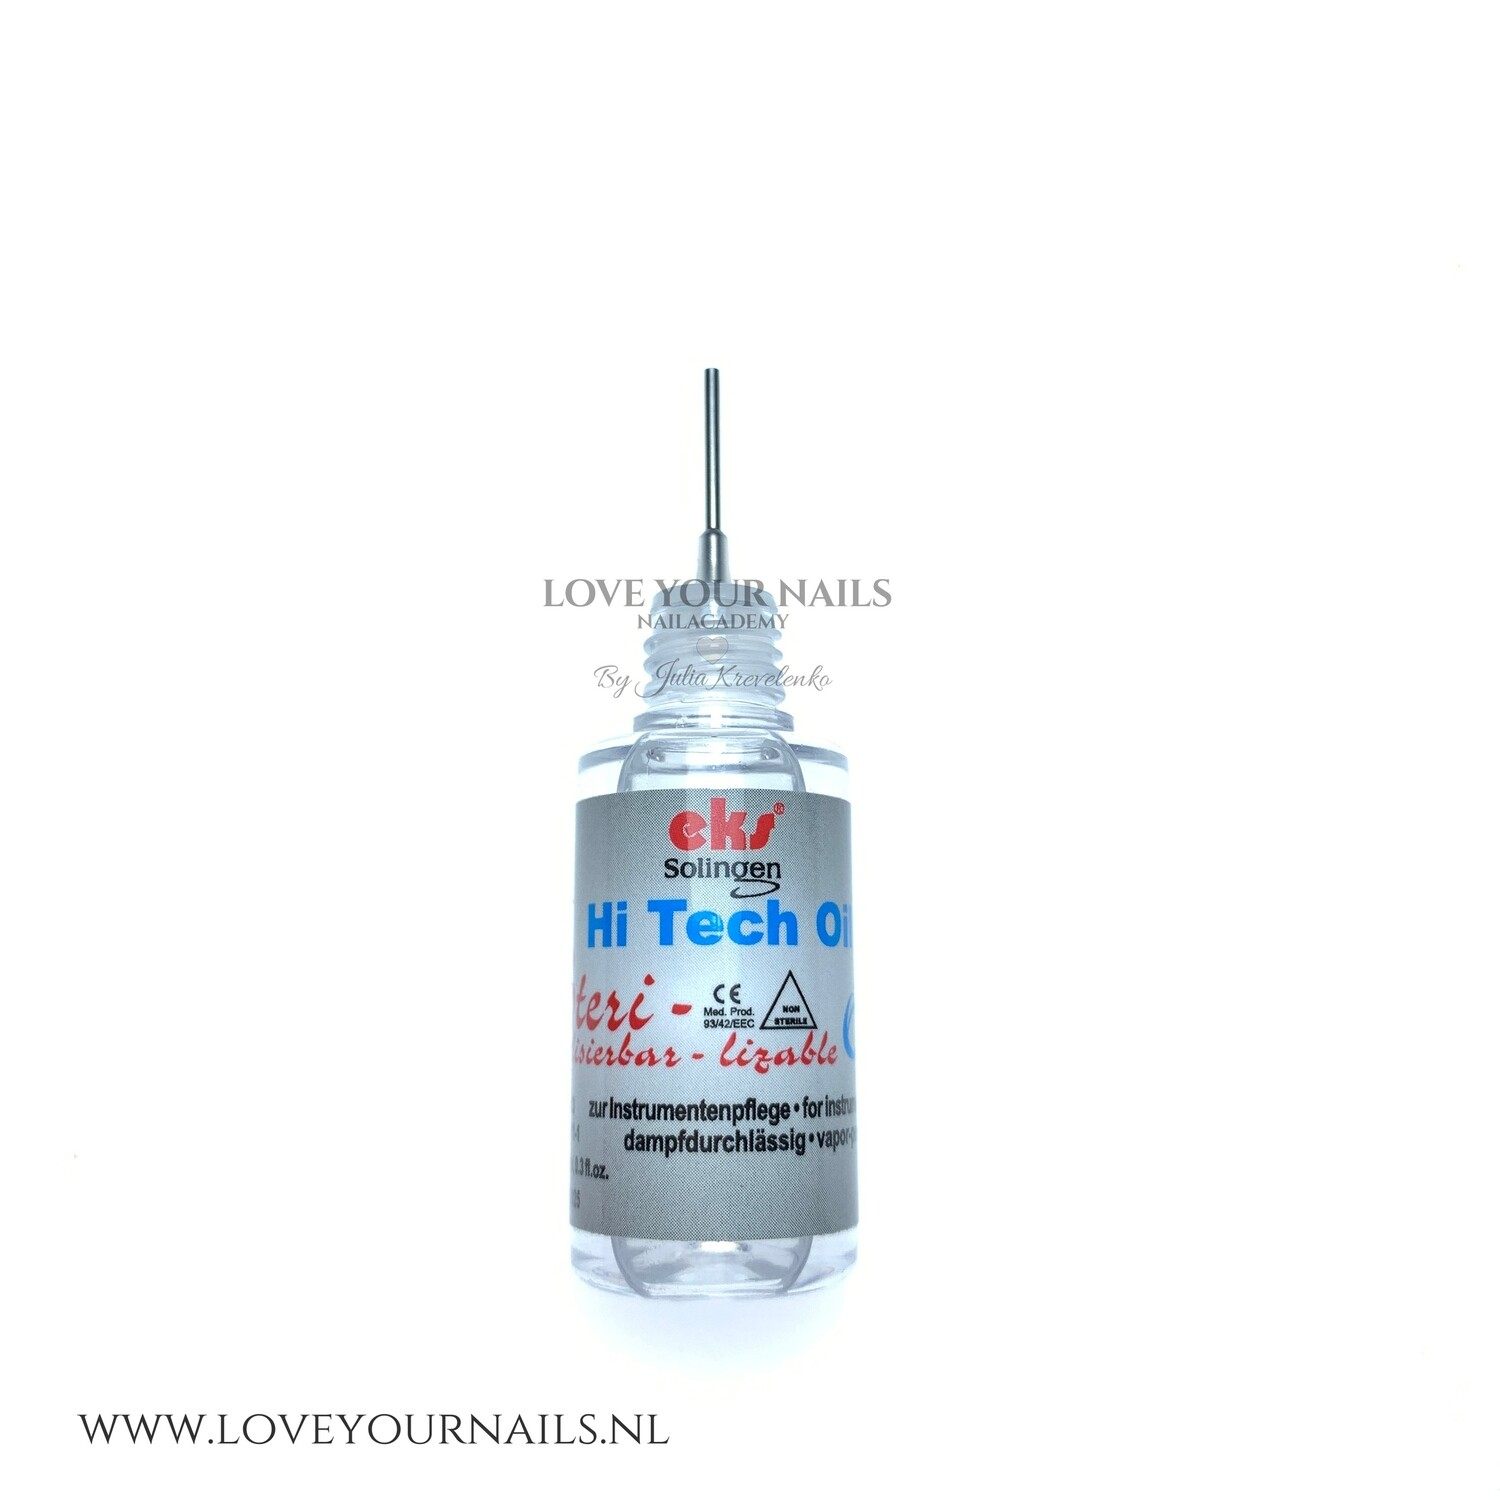 Instruments oil, 10 ml